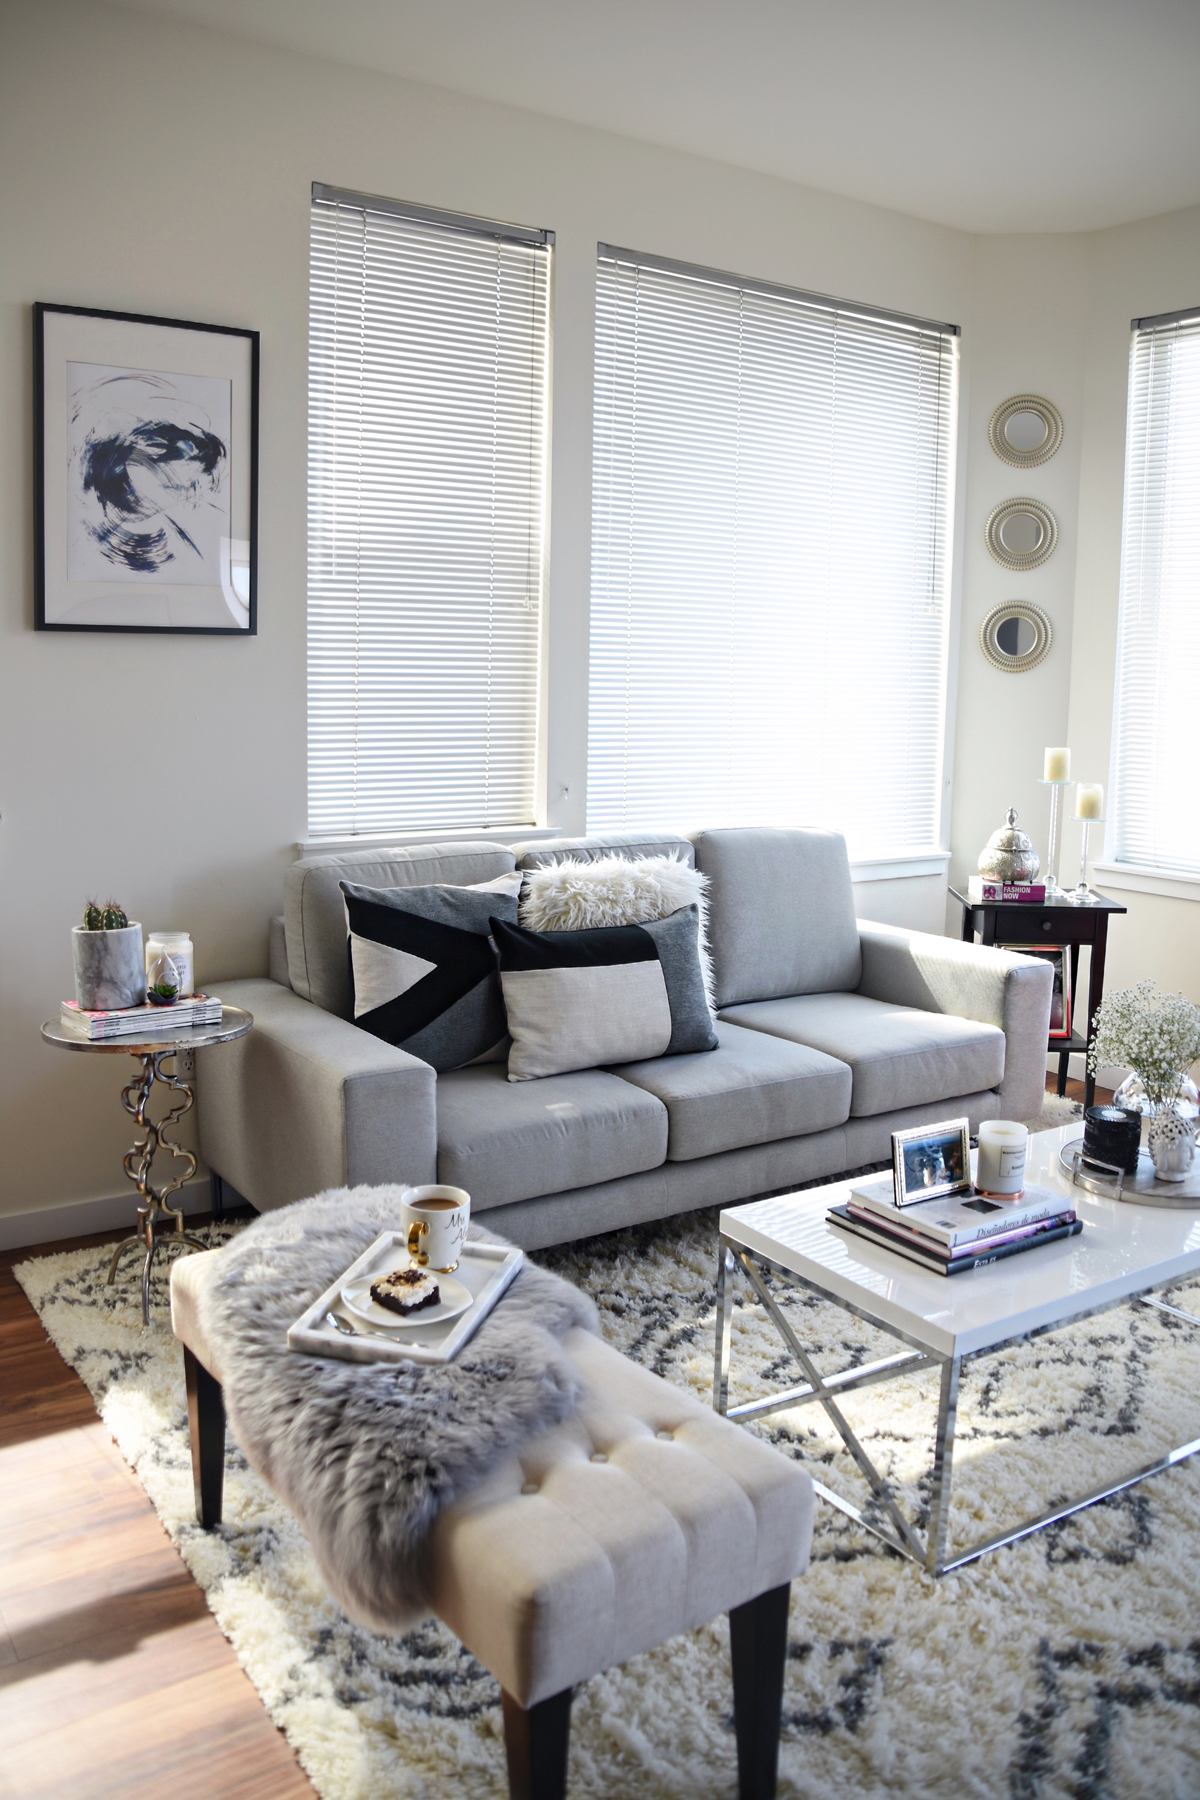 Contemporary Home Decor with Article | Home | Chic Talk | CHIC TALK